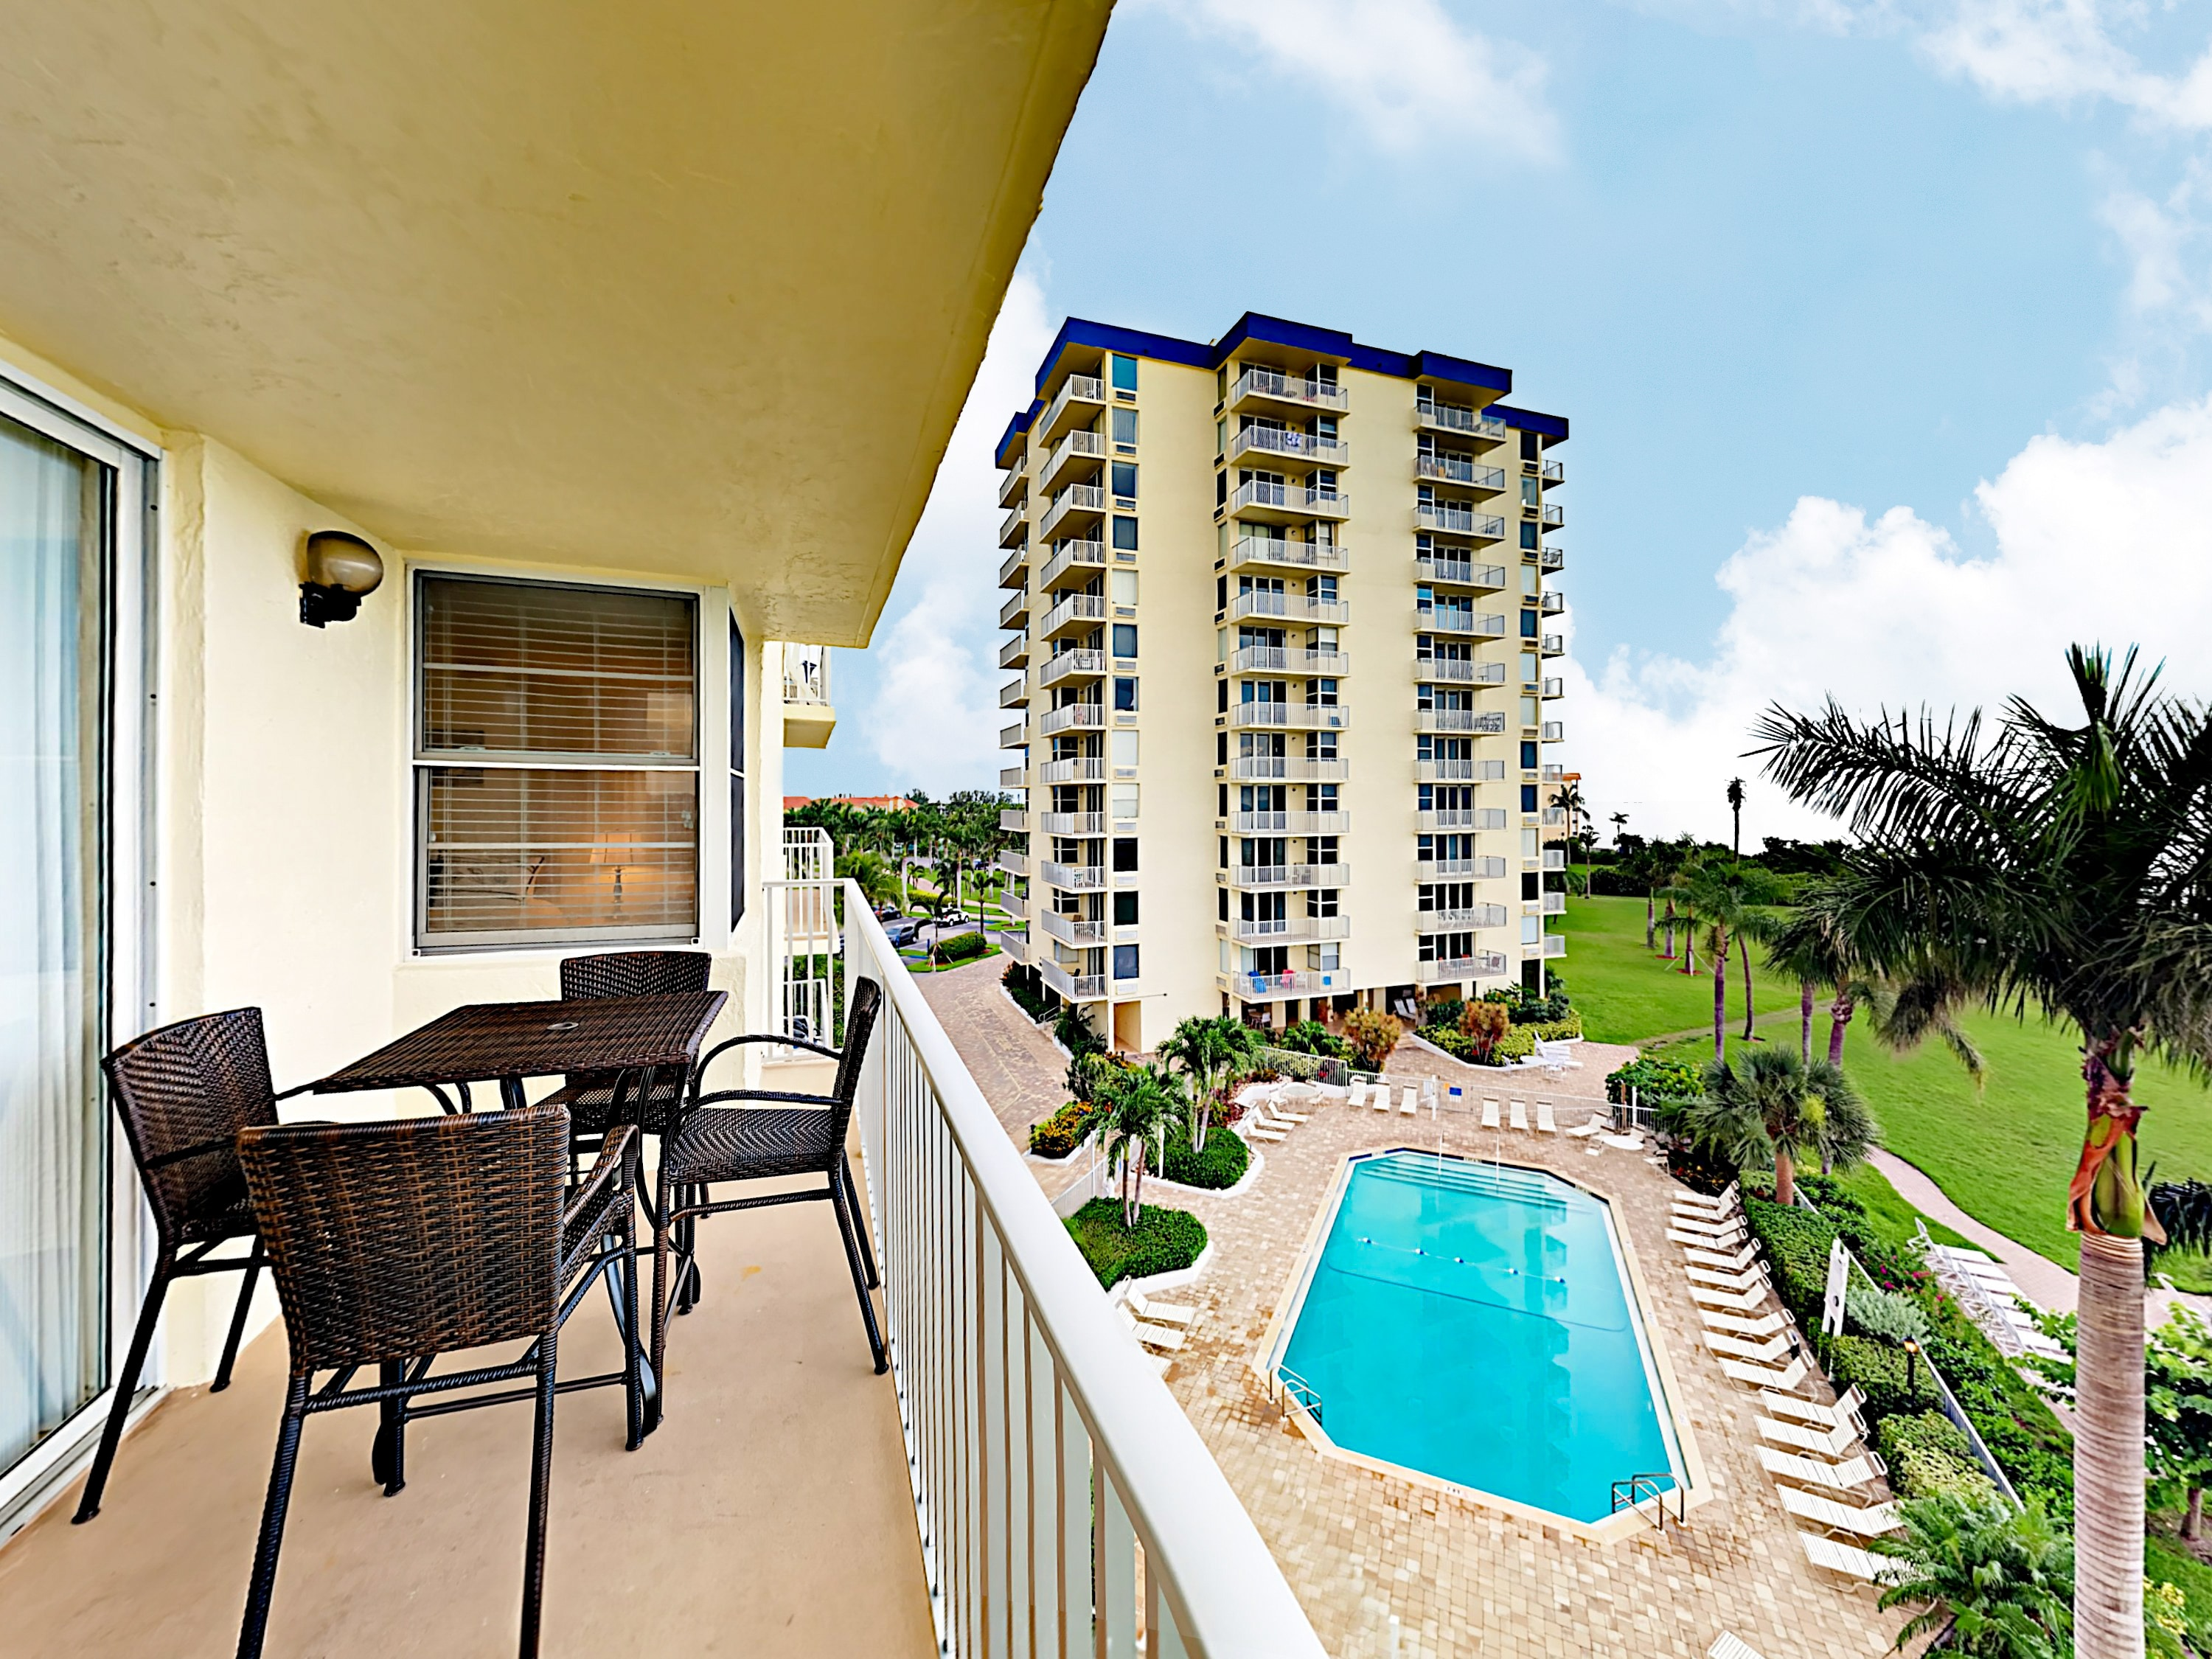 Welcome to Fort Myers Beach! Breathe the fresh coastal air on your 4th-floor balcony overlooking the pool.